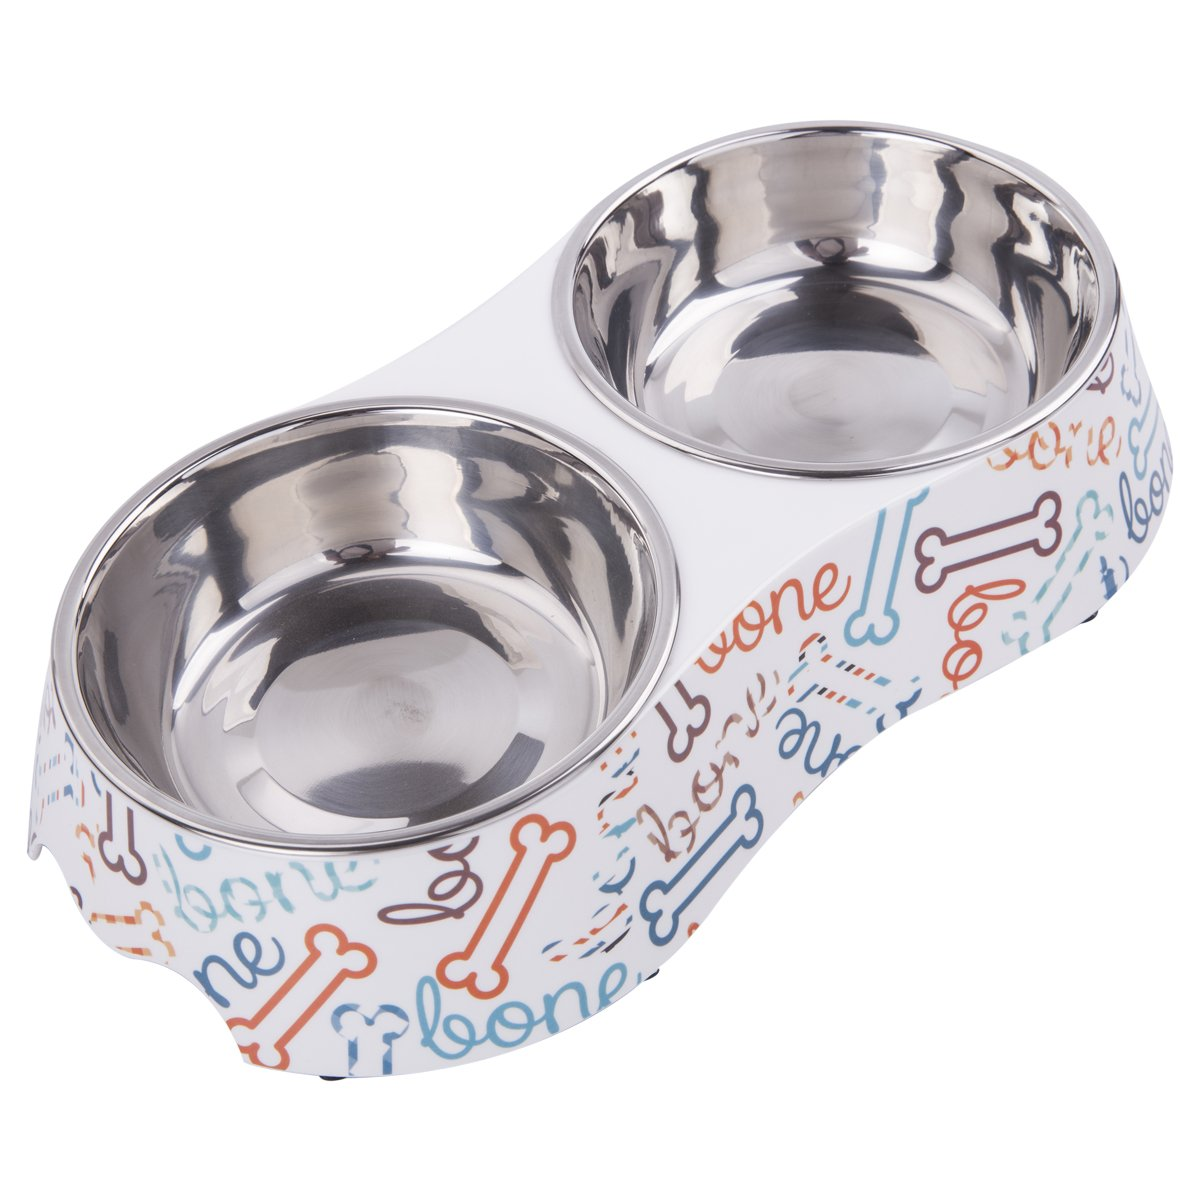 KLASKWARE Dog Bowls Double Stainless Steel Cat Dishes with Non-Skid Rubber Feet Pet Food Water Feeding Station for Dogs Cats Puppies and Kittens (Medium, Bone)